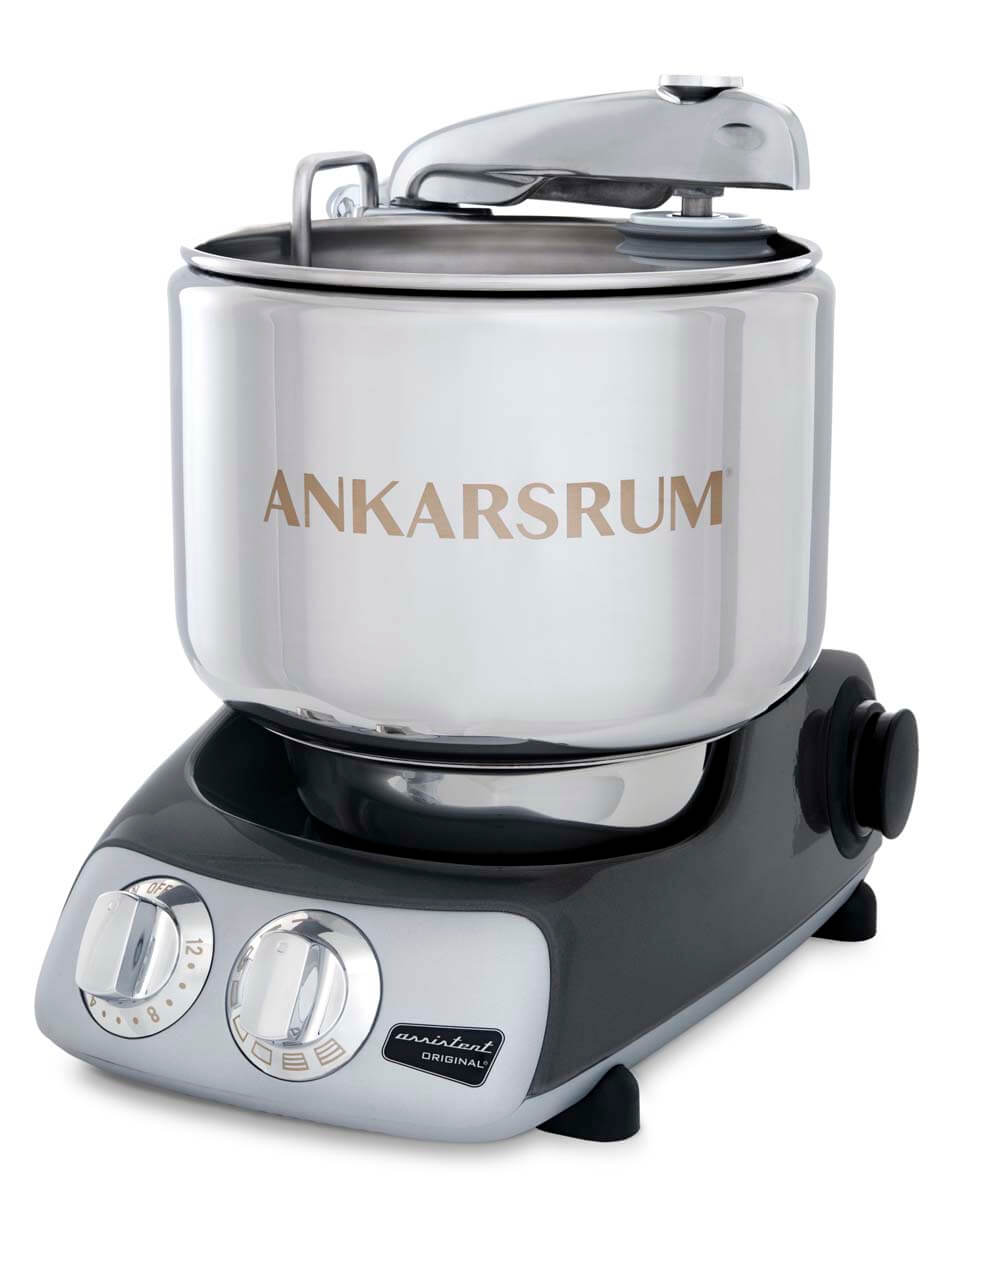 Ankarsrum Assistent Basis Black Chrom